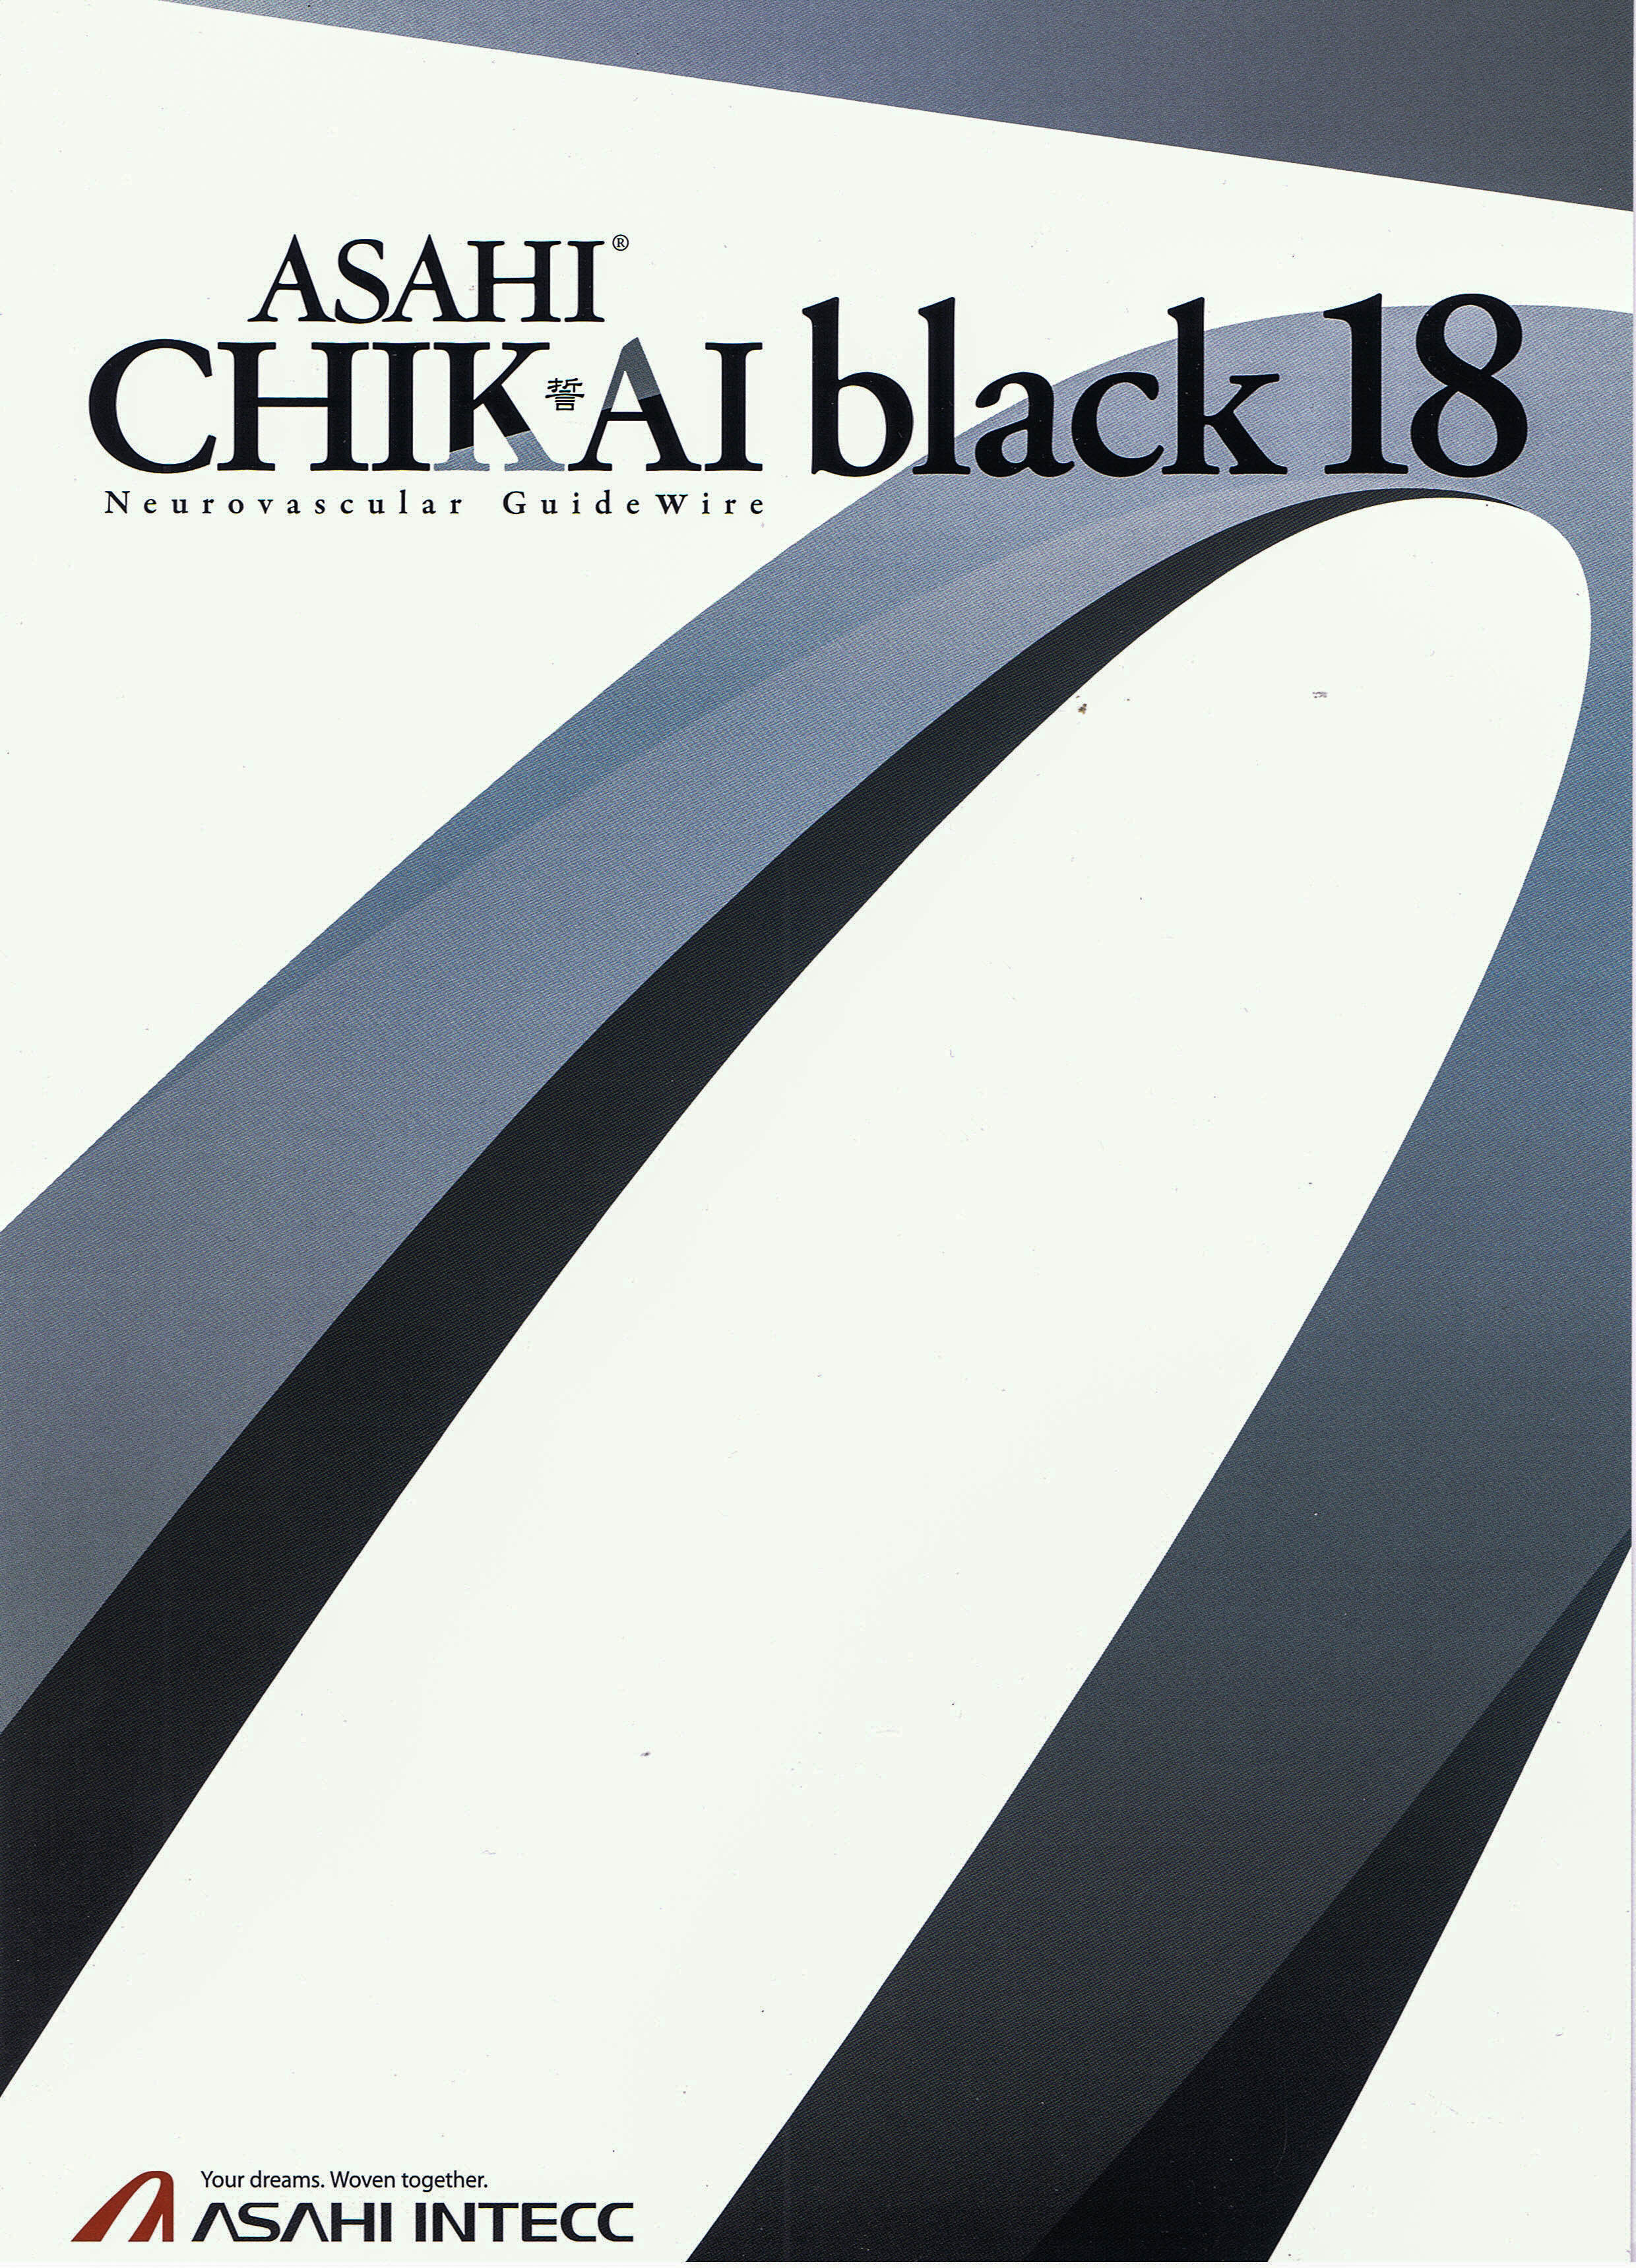 "Chikai Black 0.018"" Neuro Guidewire"